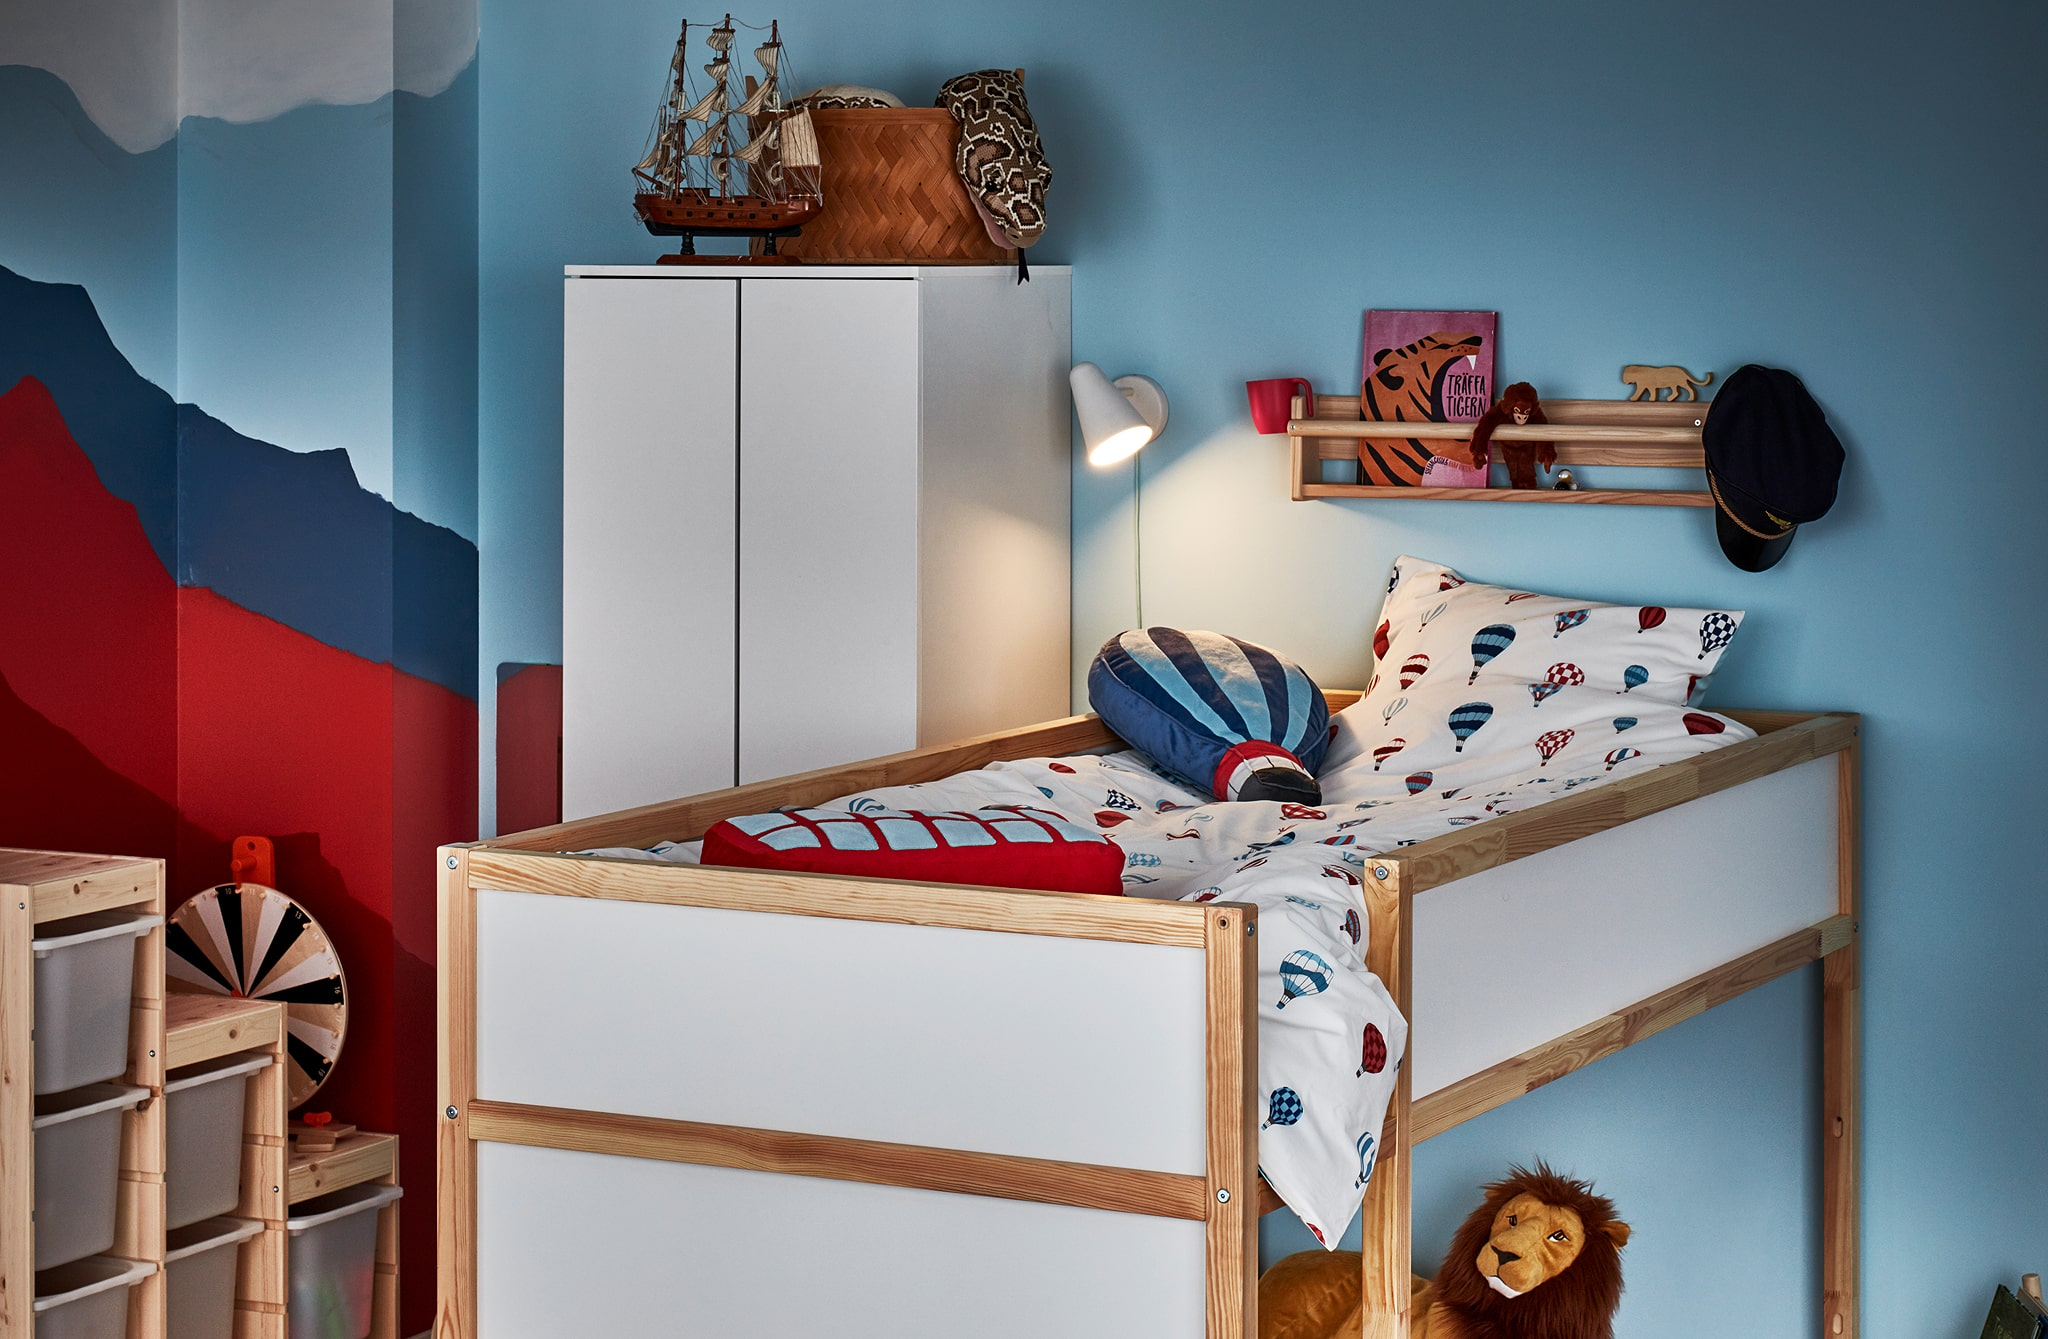 Corner of a child's room with a reversible bed in loft position, a ledge shelf with book and toys, lit bedlight.